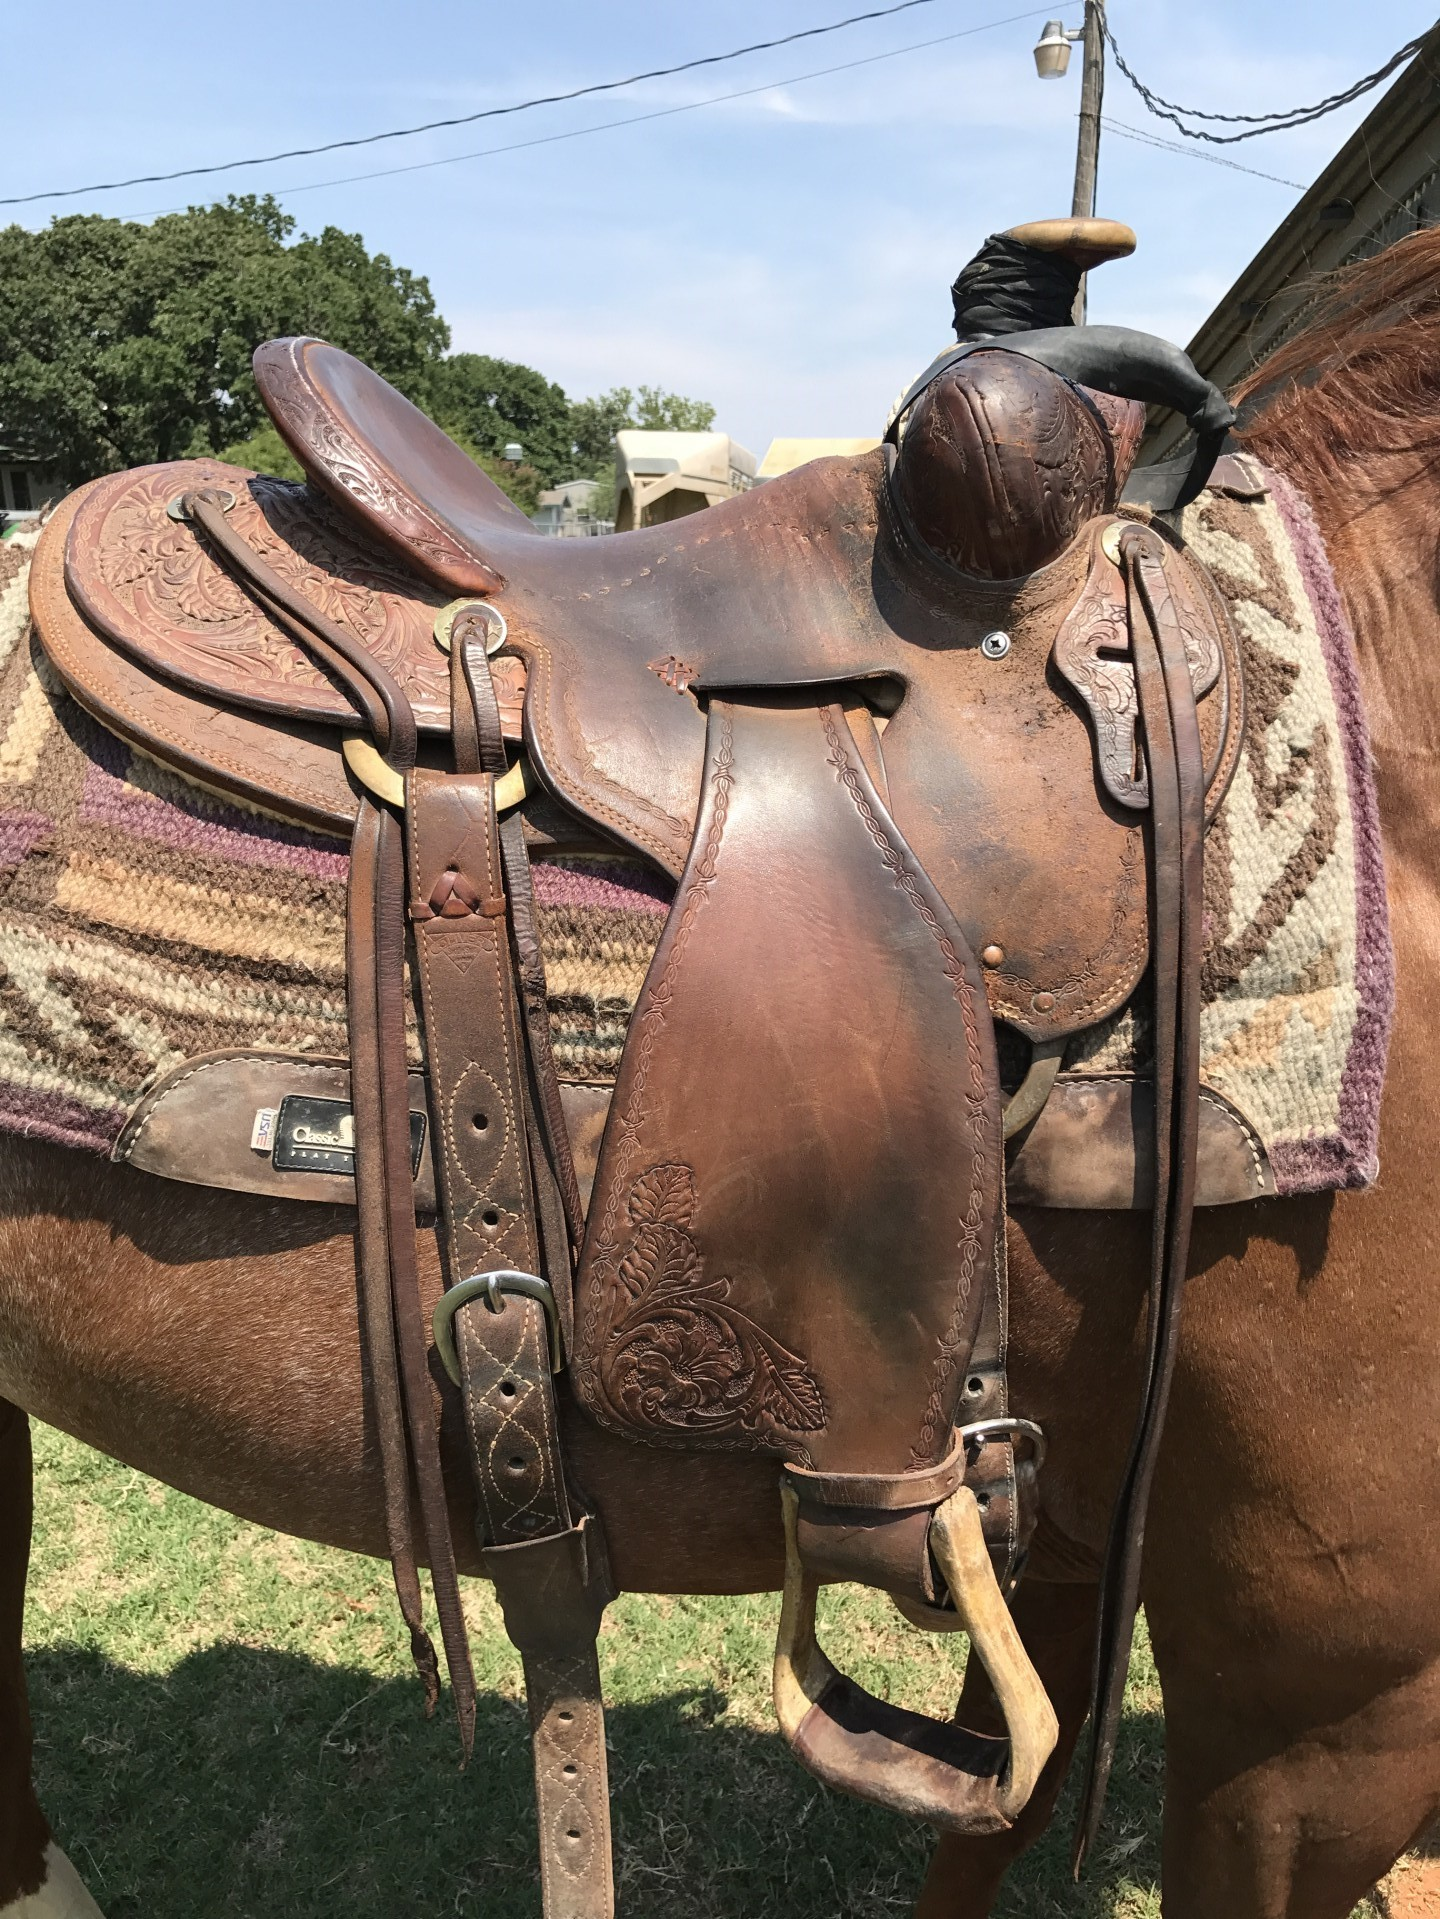 Used 15 inch Oliver Saddle with a Tucson Tree